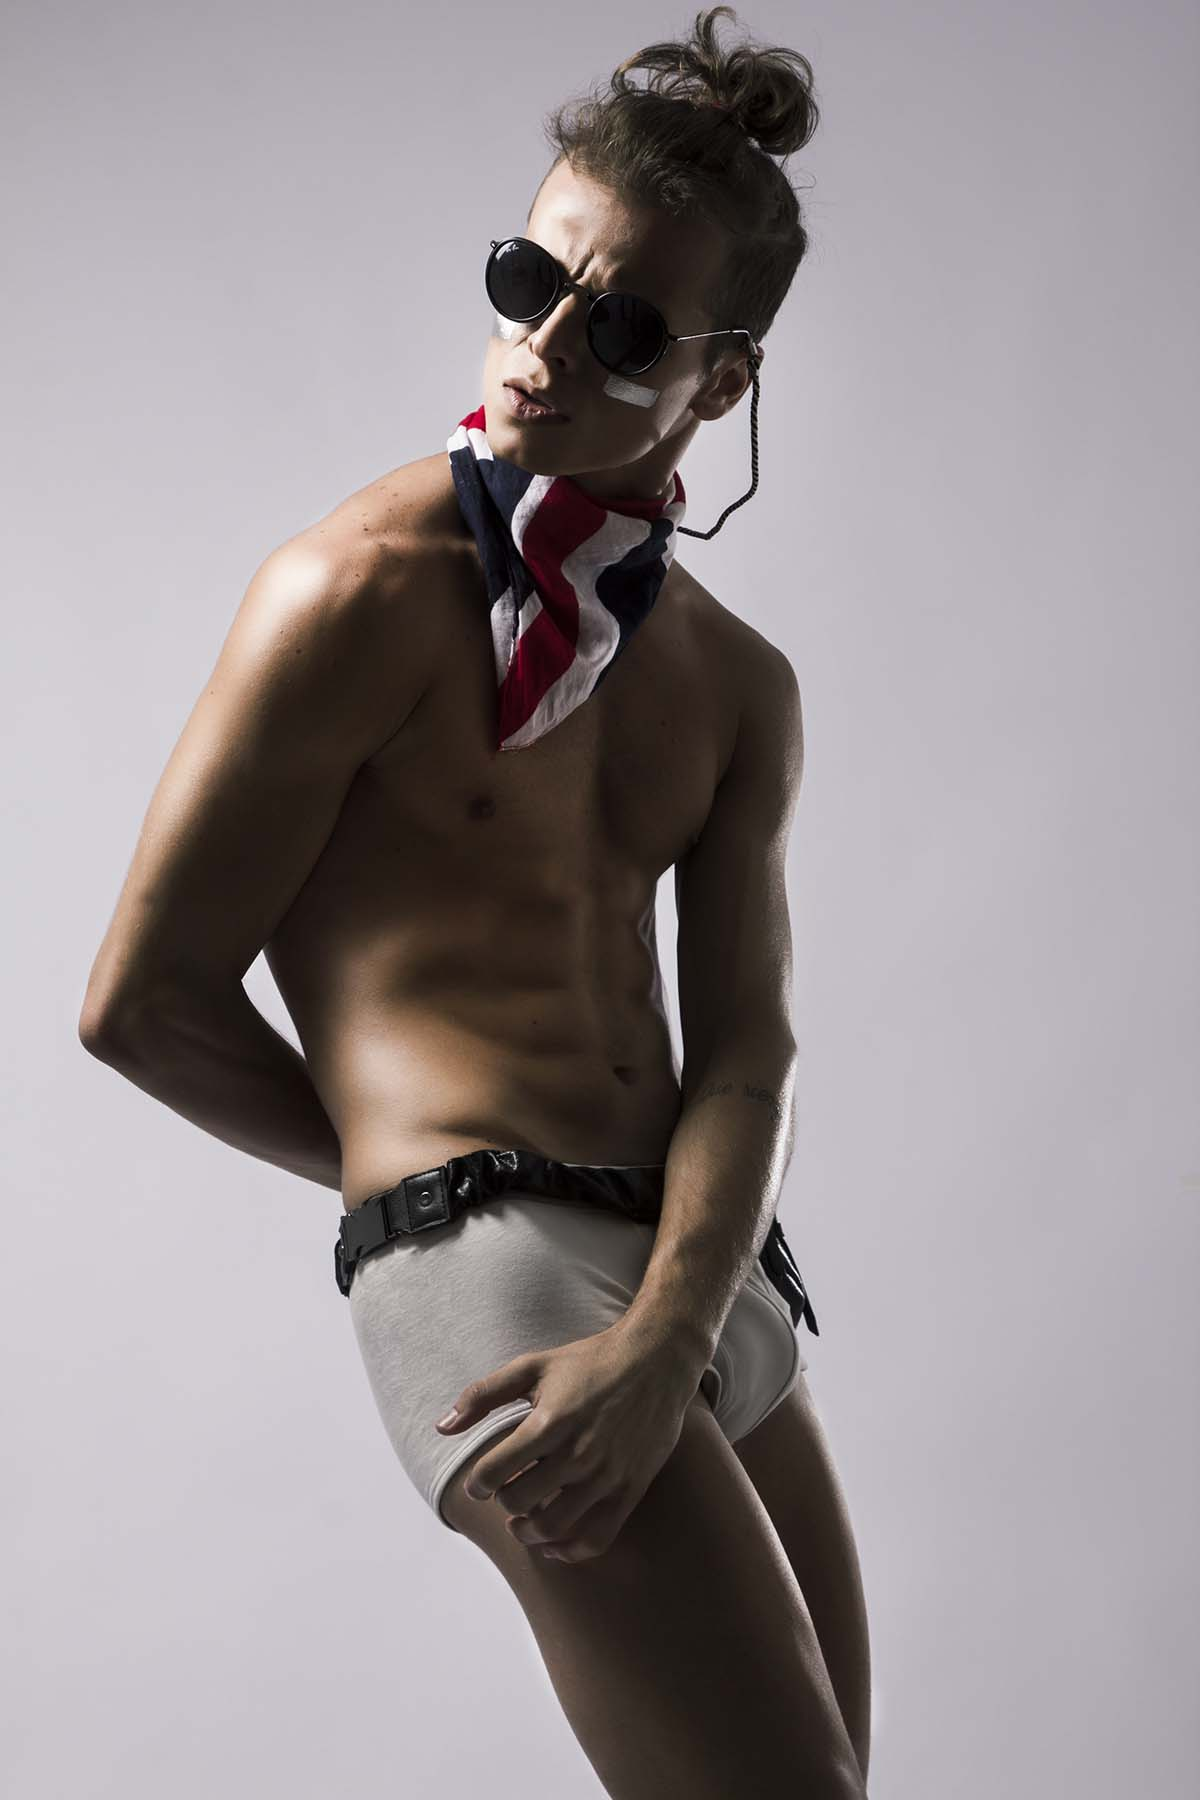 Tales Cotta by Matheus Muraca for Brazilian Male Model